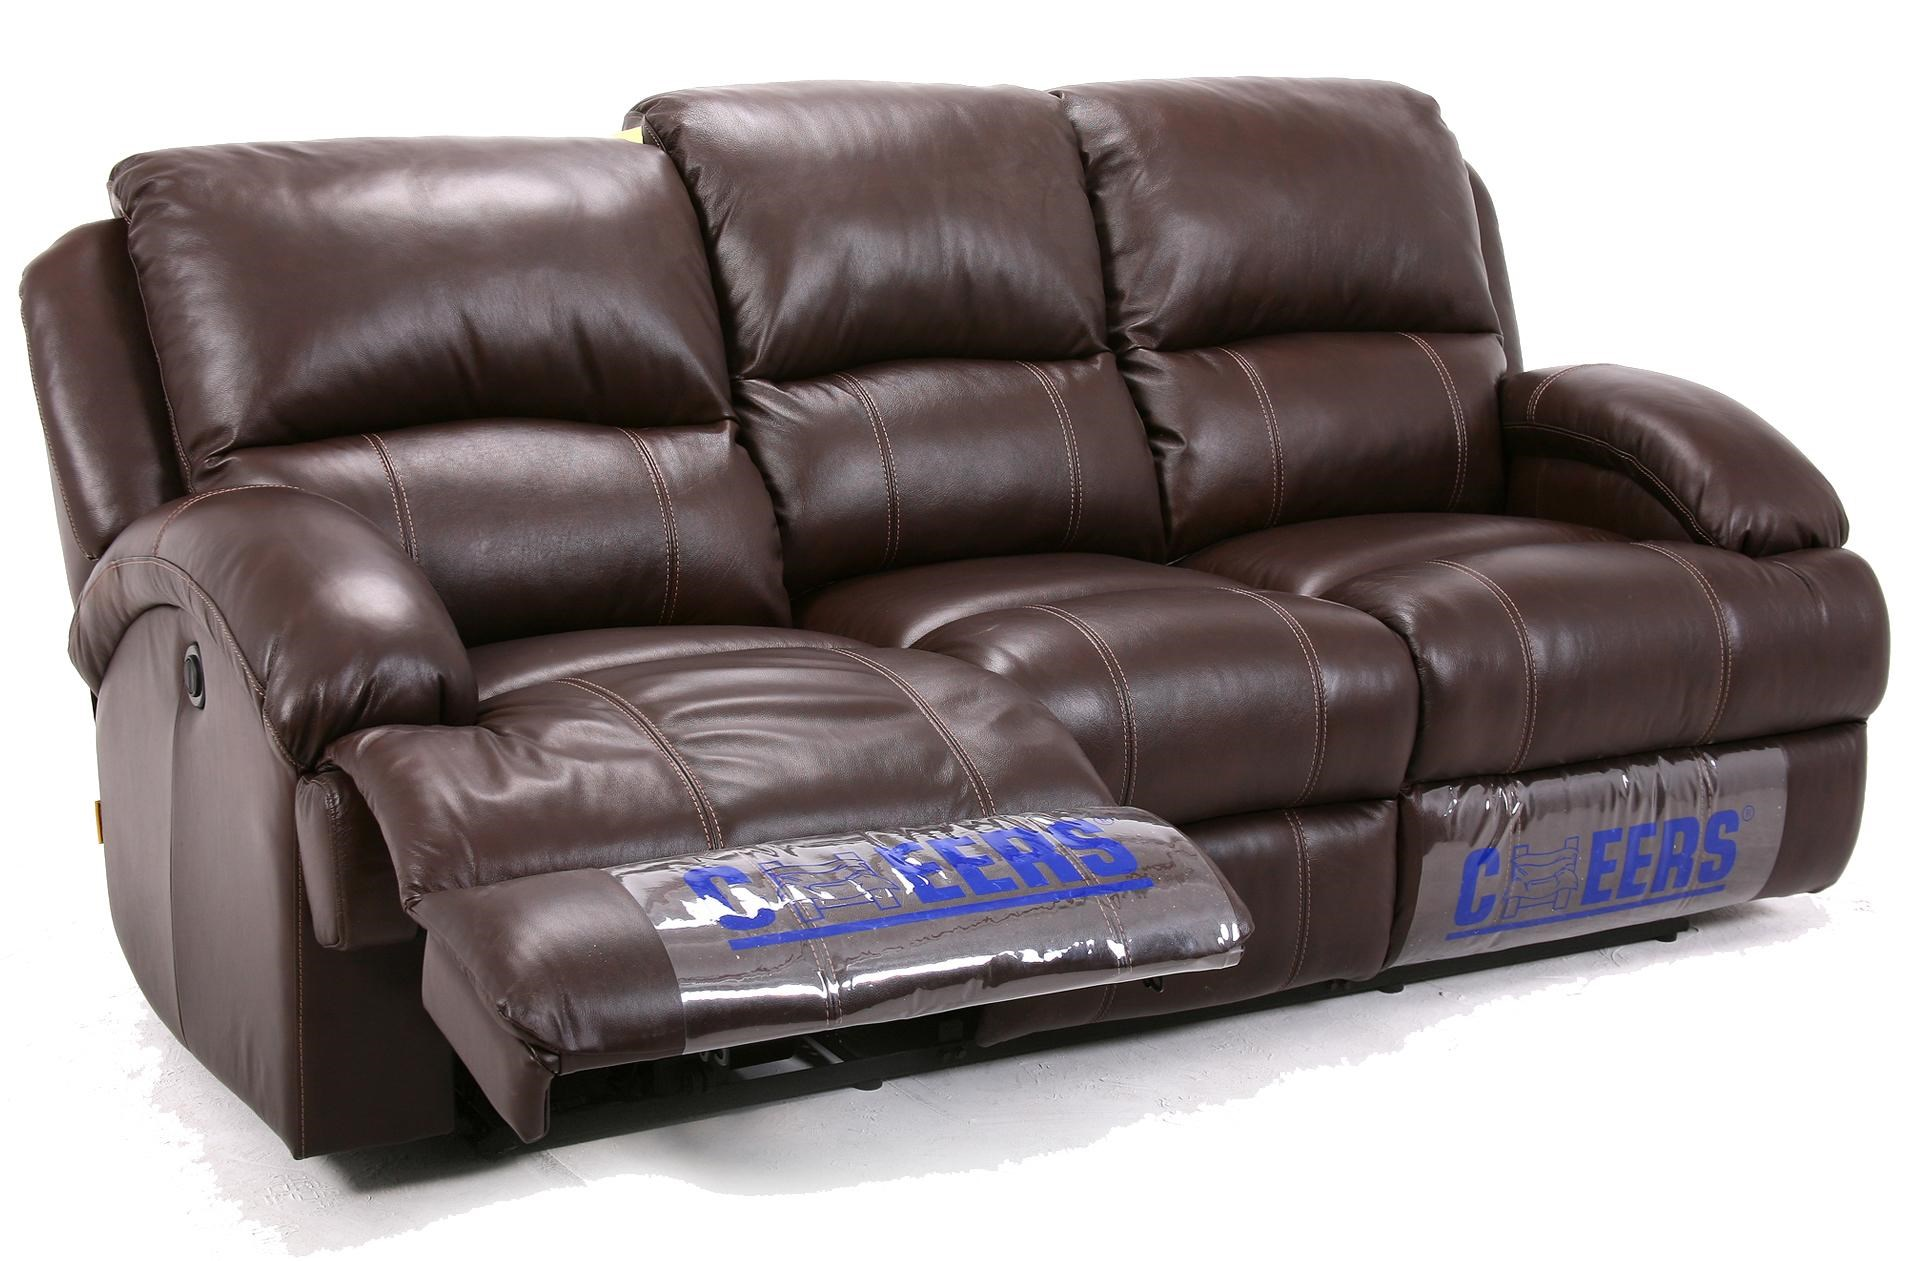 ... Cheers Sofa UXW8626M Power Reclining Sofa. Sofa Shown May Not Represent Exact Features Indicated  sc 1 st  Hudsonu0027s Furniture & Cheers Sofa UXW8626M Casual Power Reclining Sofa with Bustle Back ... islam-shia.org